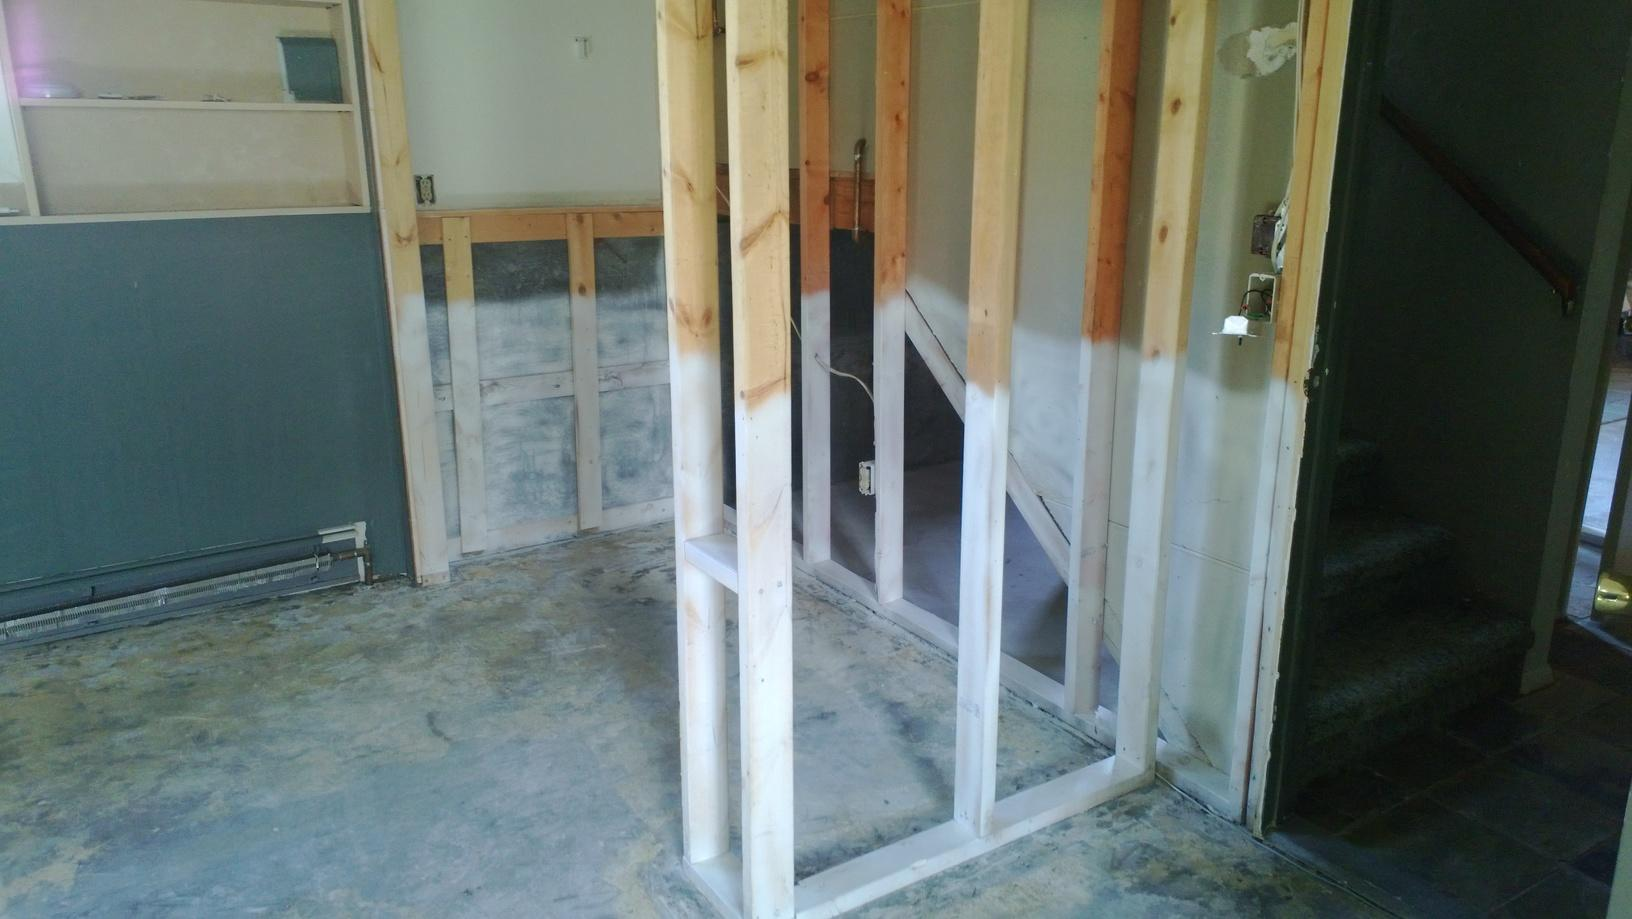 Mold Remediation in Livingston, MT - After Photo